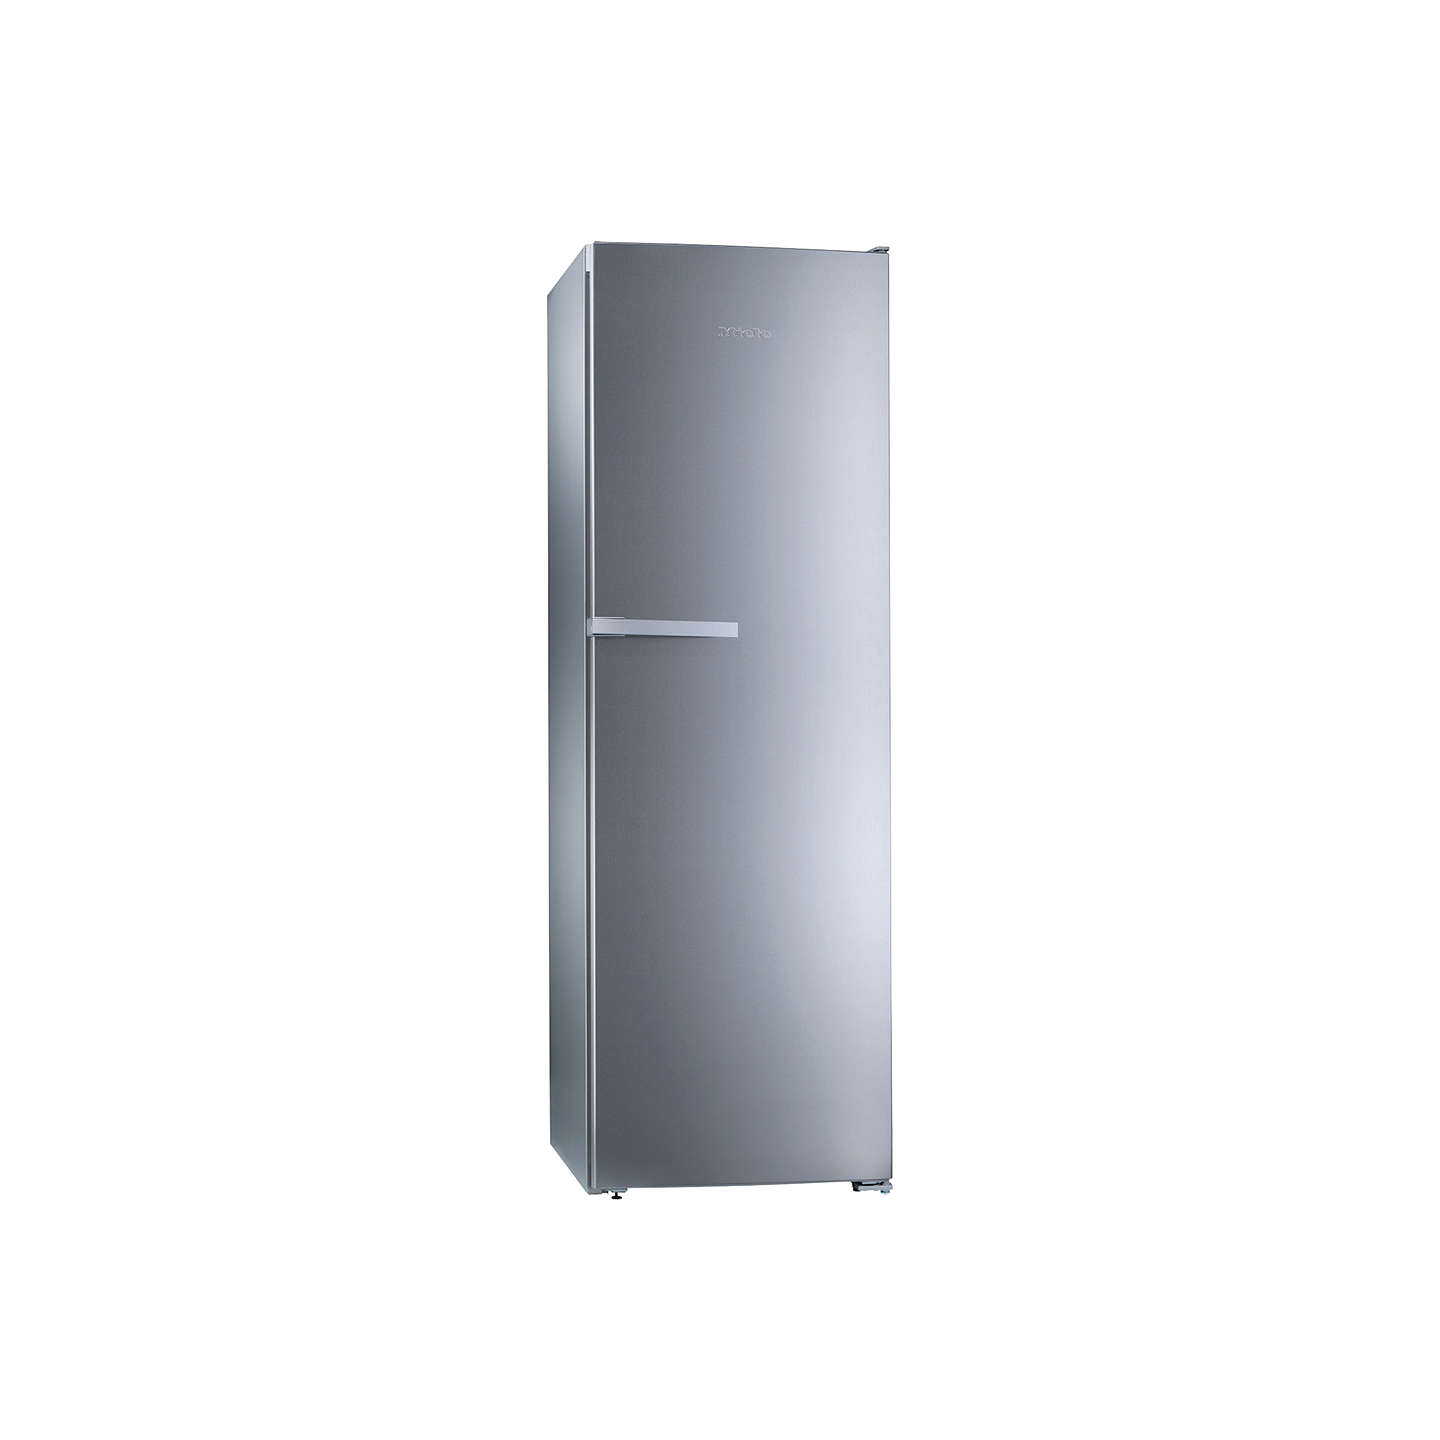 BuyMiele K14820SDed/cs Larder Fridge, A+ Energy Rating, 60cm Wide, Clean Steel Online at johnlewis.com